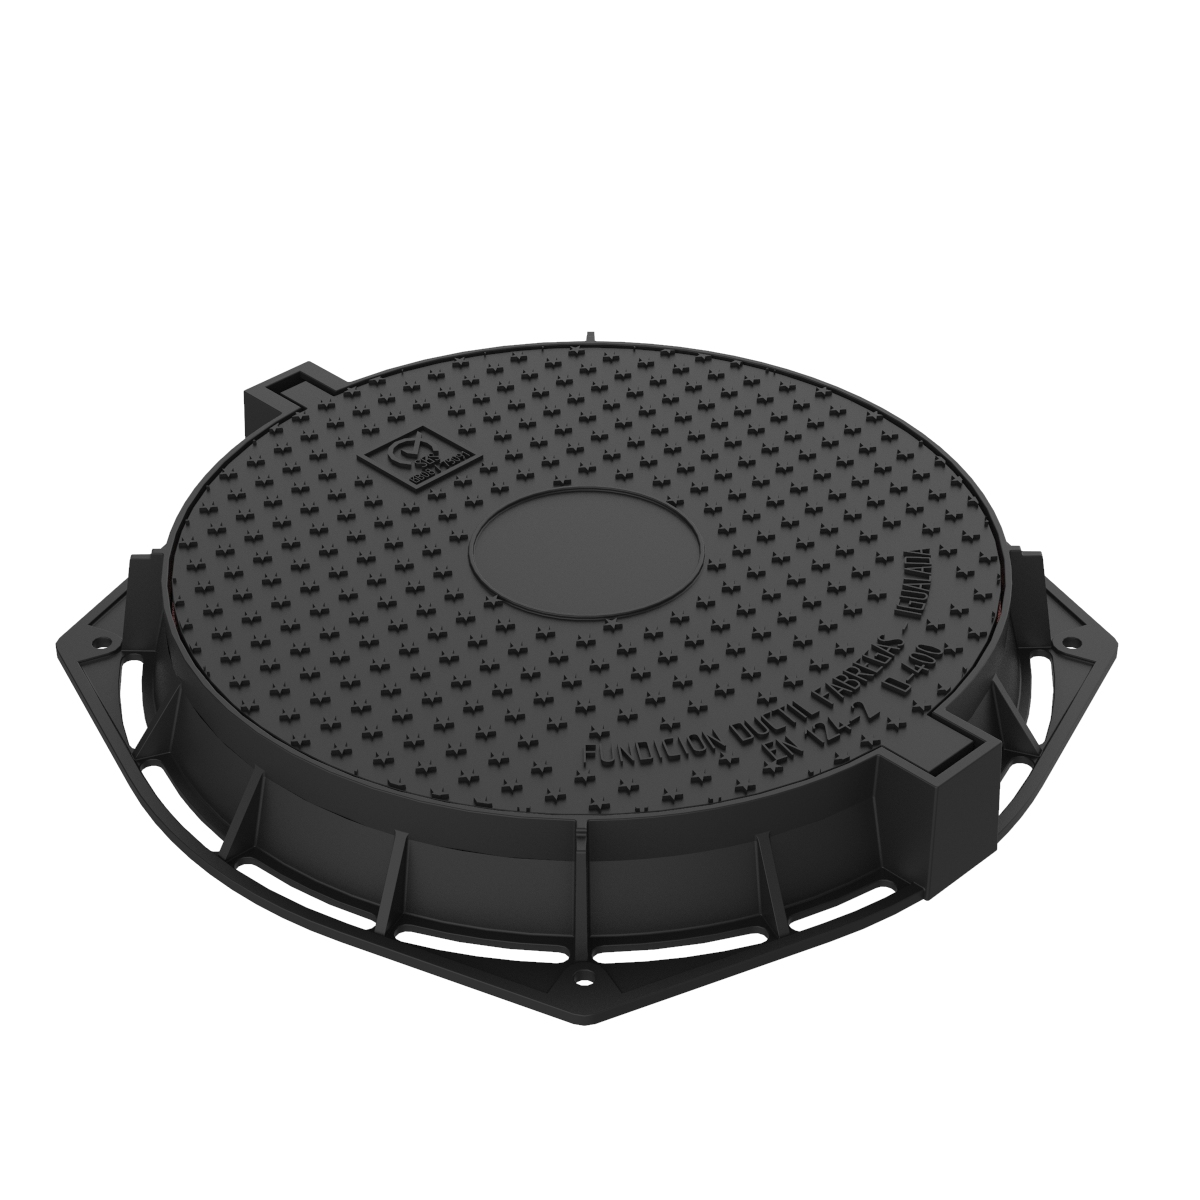 REGISTRY MANHOLE COVERS AND RINGS